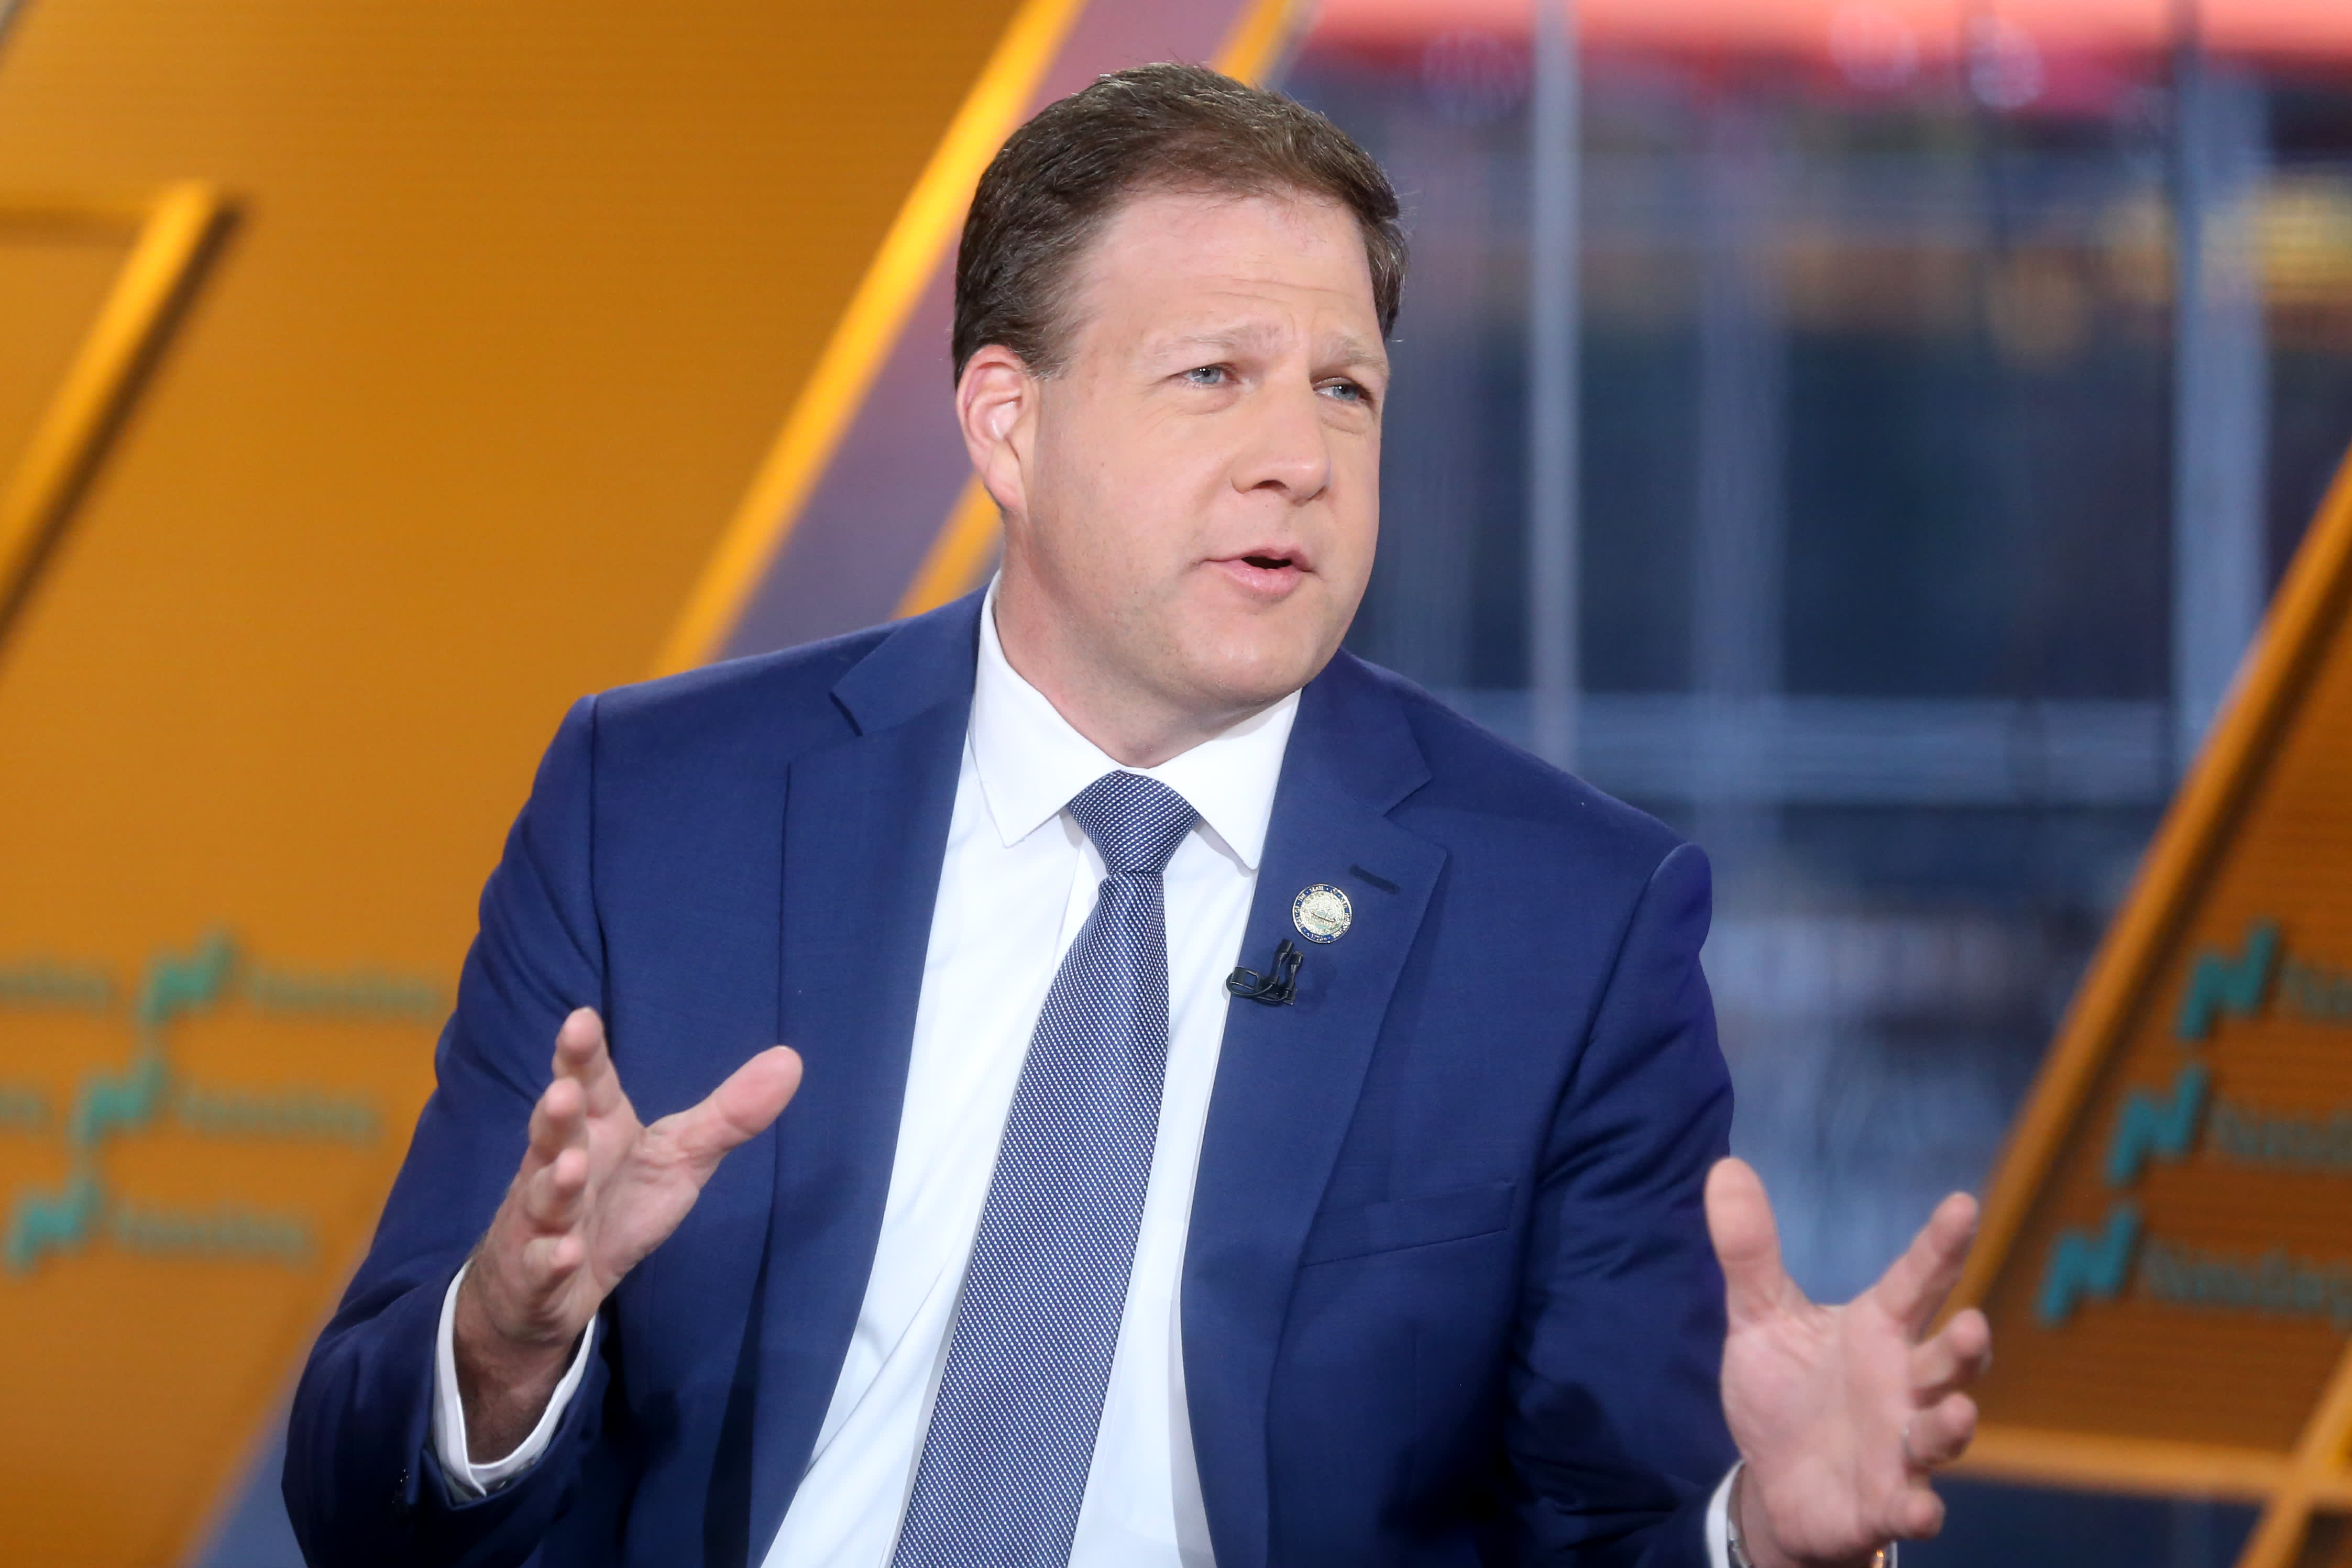 New Hampshire Gov. Chris Sununu issues stay-at-home order amid coronavirus outbreak